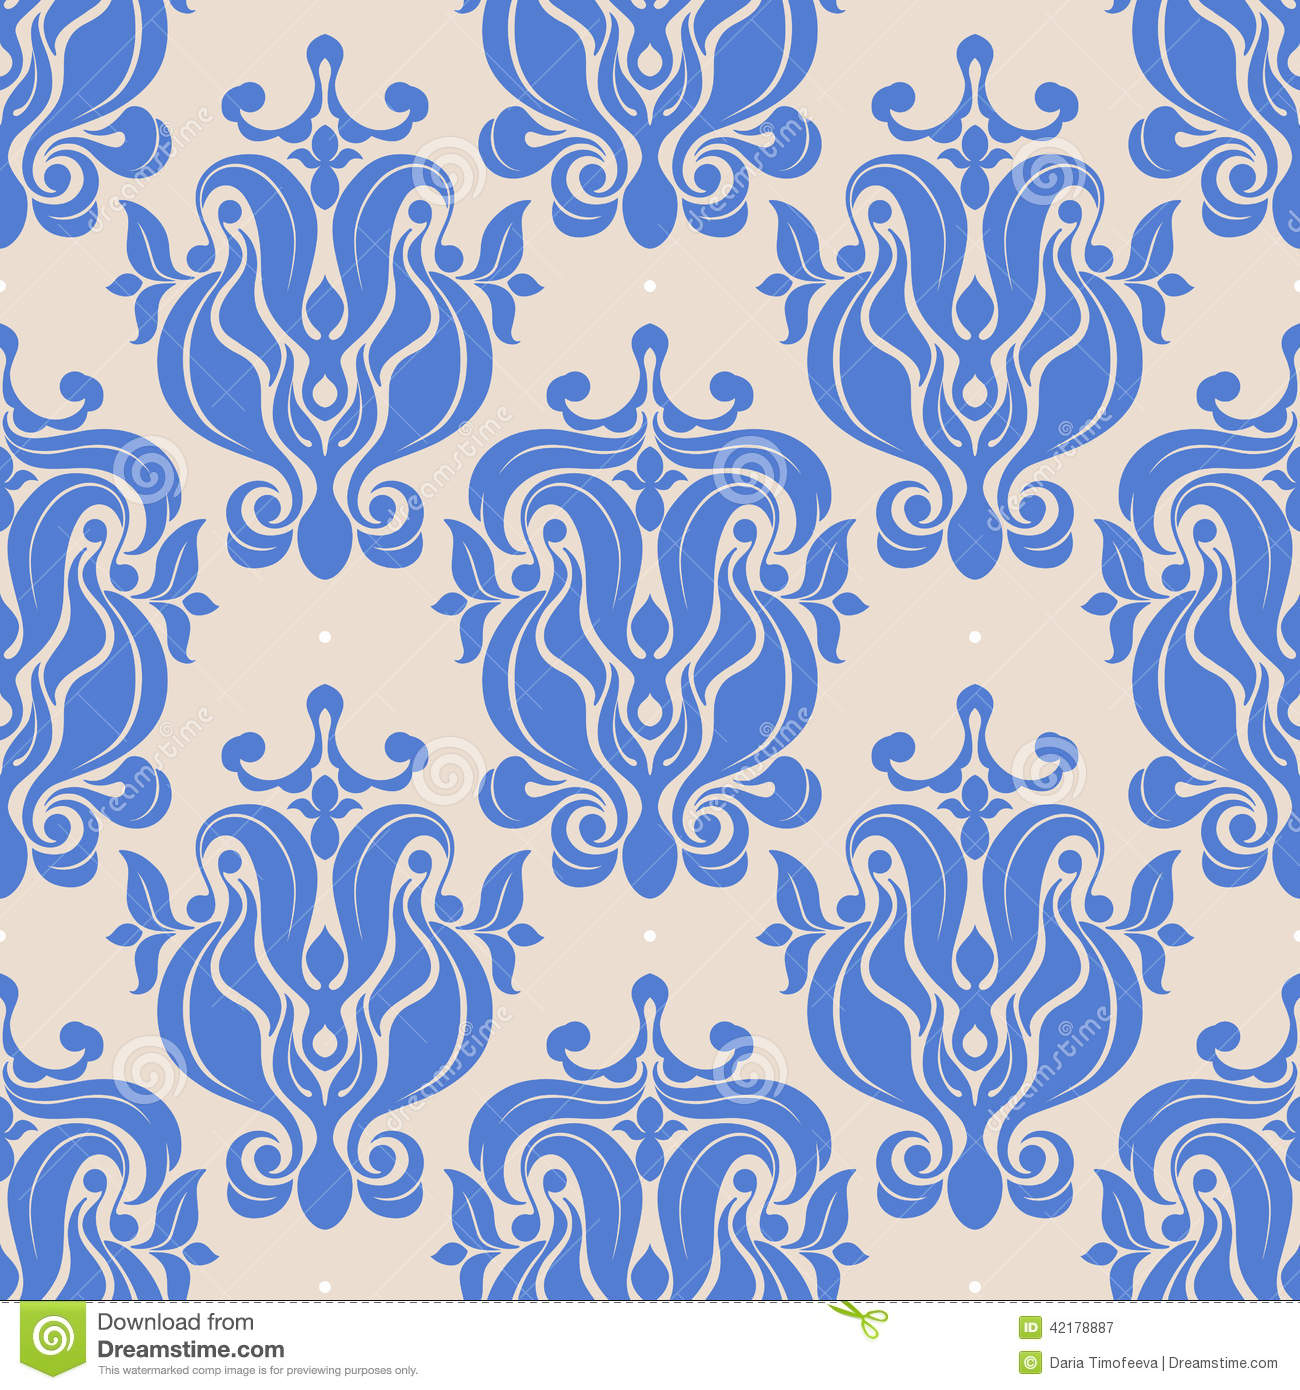 Vintage blue natural abstract pattern